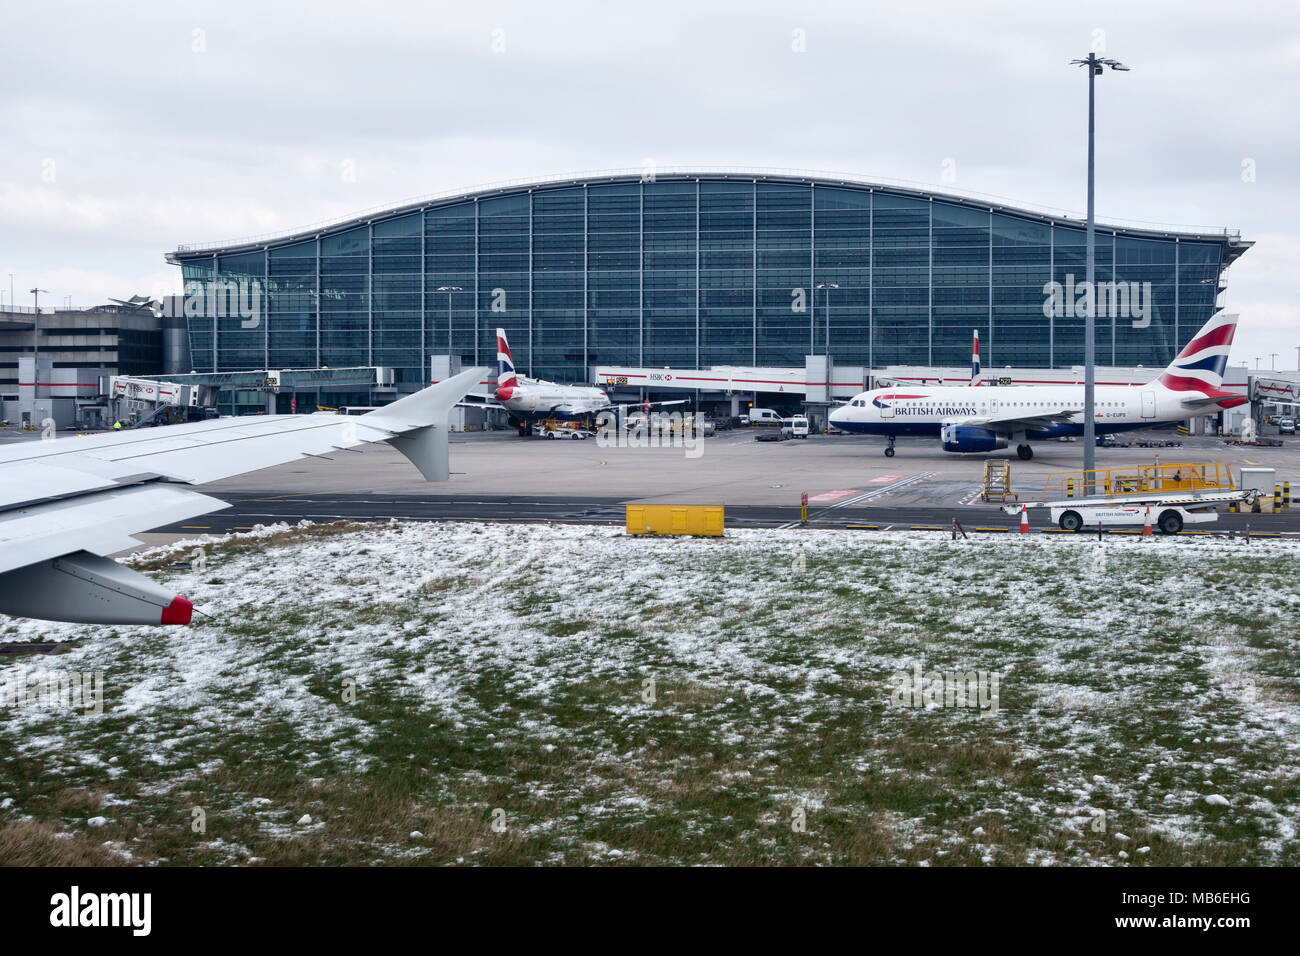 Heathrow Airport, London, UK. Terminal 5, designed by the Richard Rogers Partnership and opened in 2008, is the largest building in the UK - Stock Image